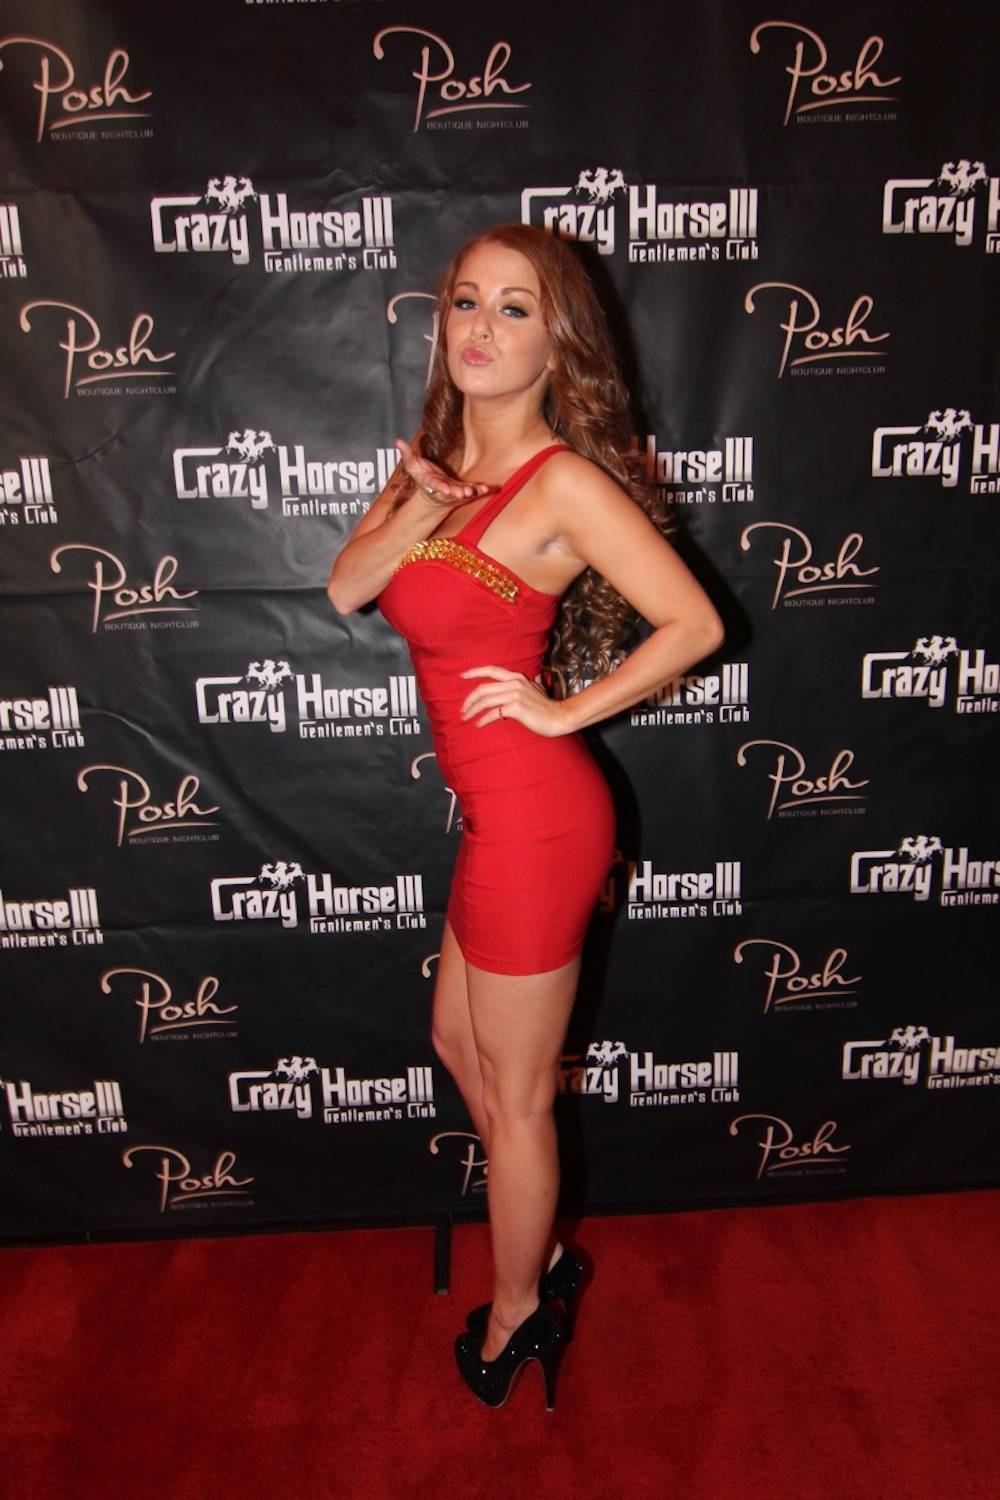 Leanna Decker Blows Kisses on Red Carpet at Crazy Horse 3